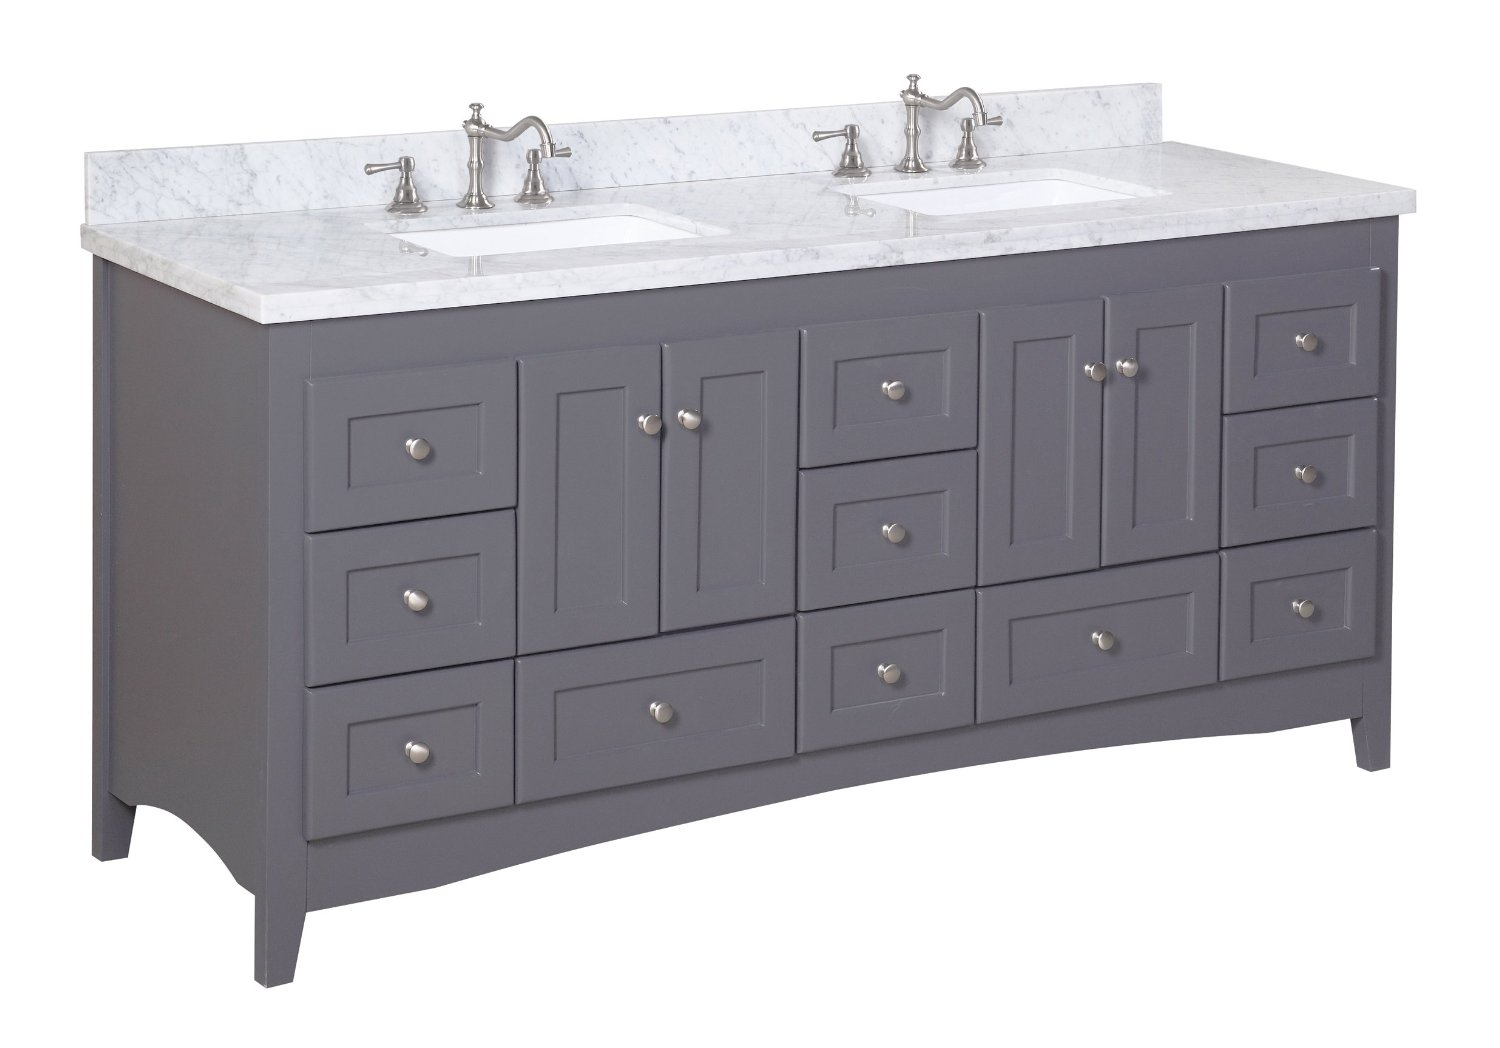 Bathroom Vanities Yonkers Ny best bathroom vanities, sinks and design ideas | reunited home